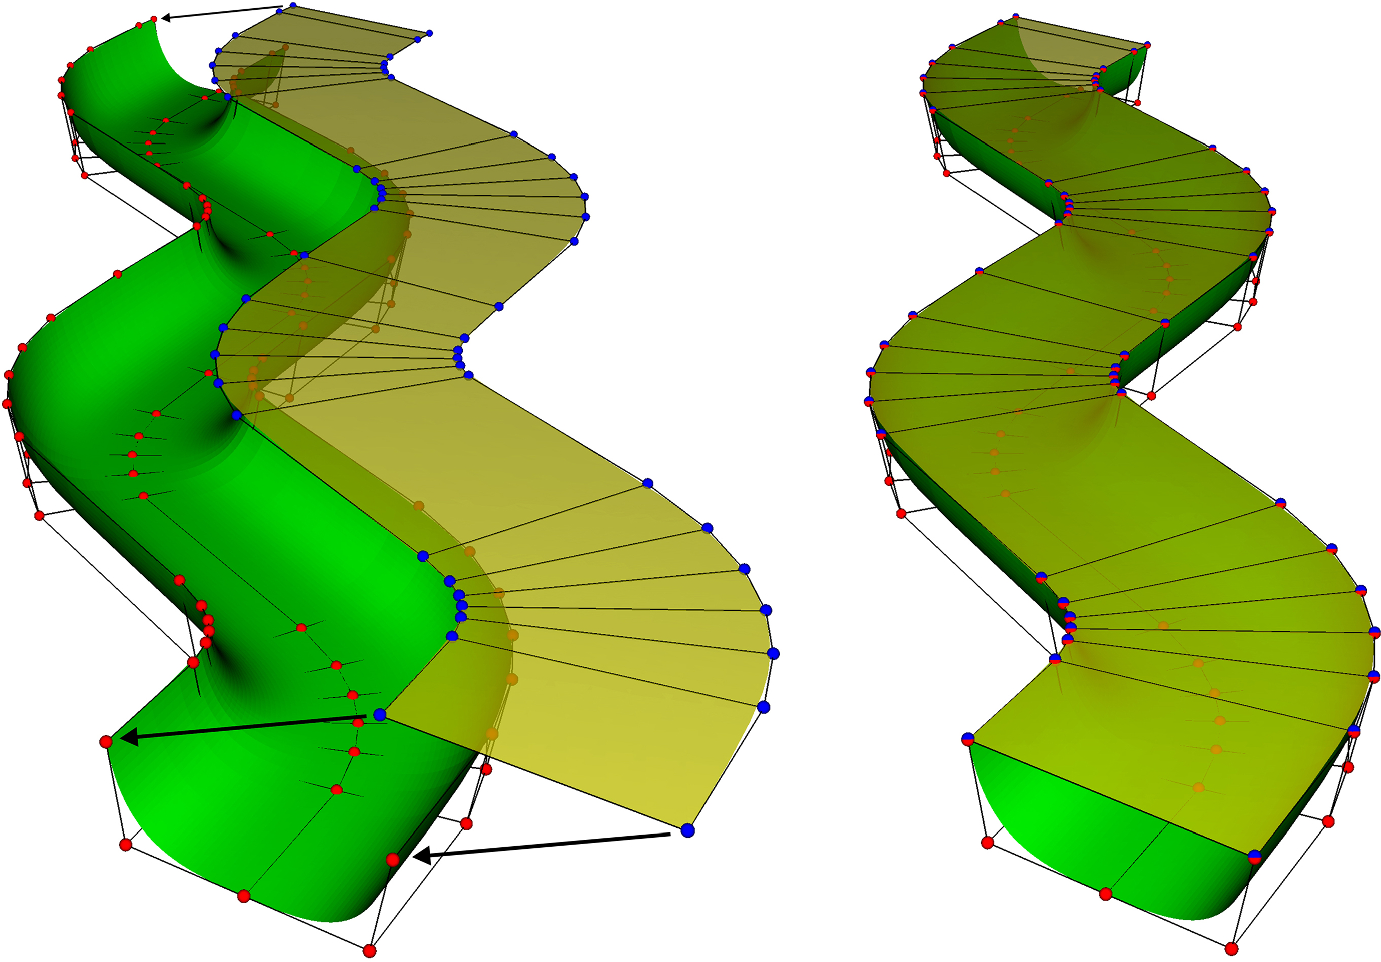 Surface-Based Geological Reservoir Modelling Using Grid-Free NURBS